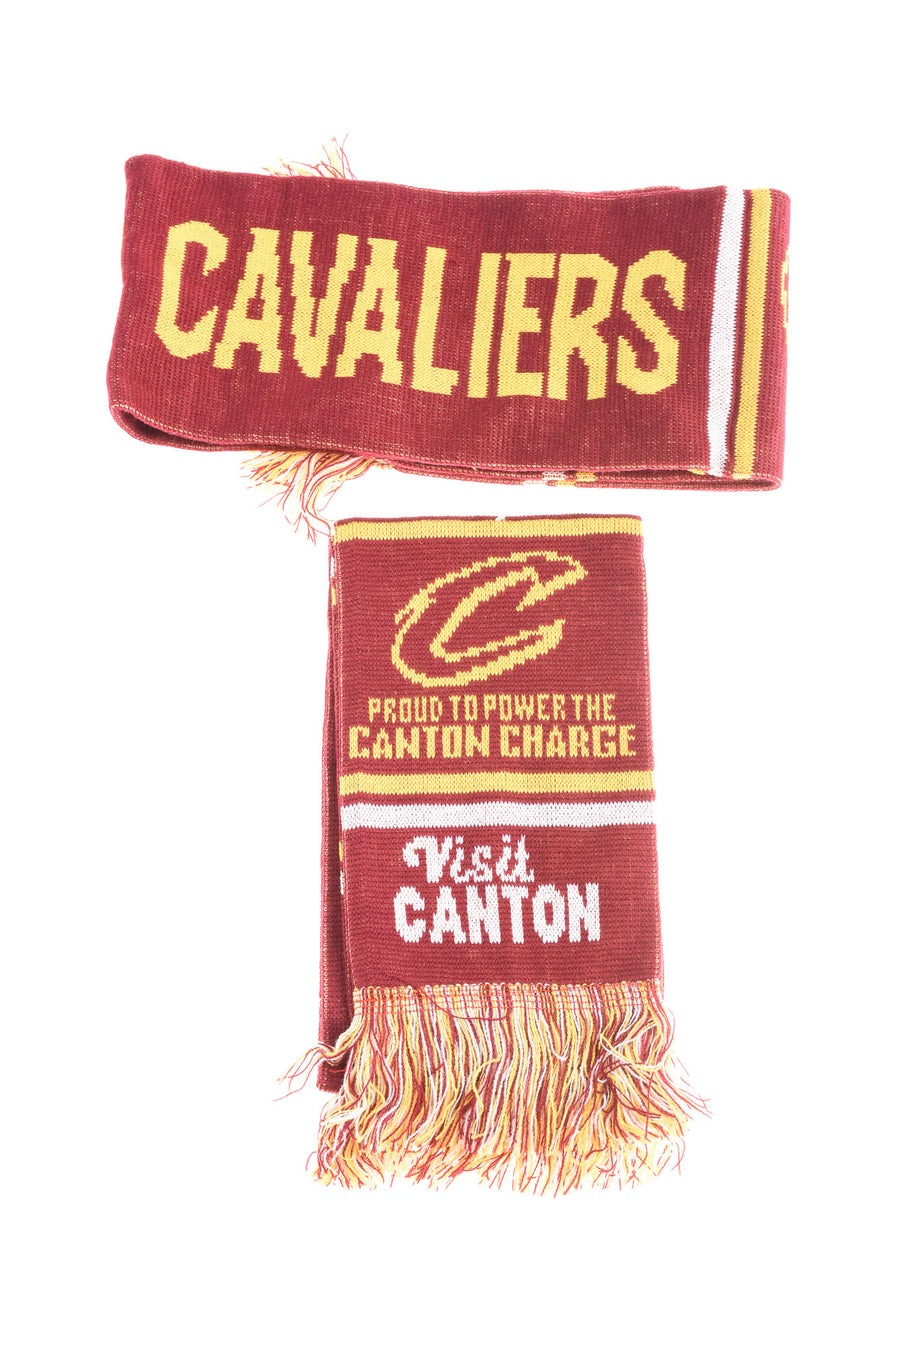 USED No Brand Cleveland Cavalier & Canton Charge Scarves One Size Red & Yellow